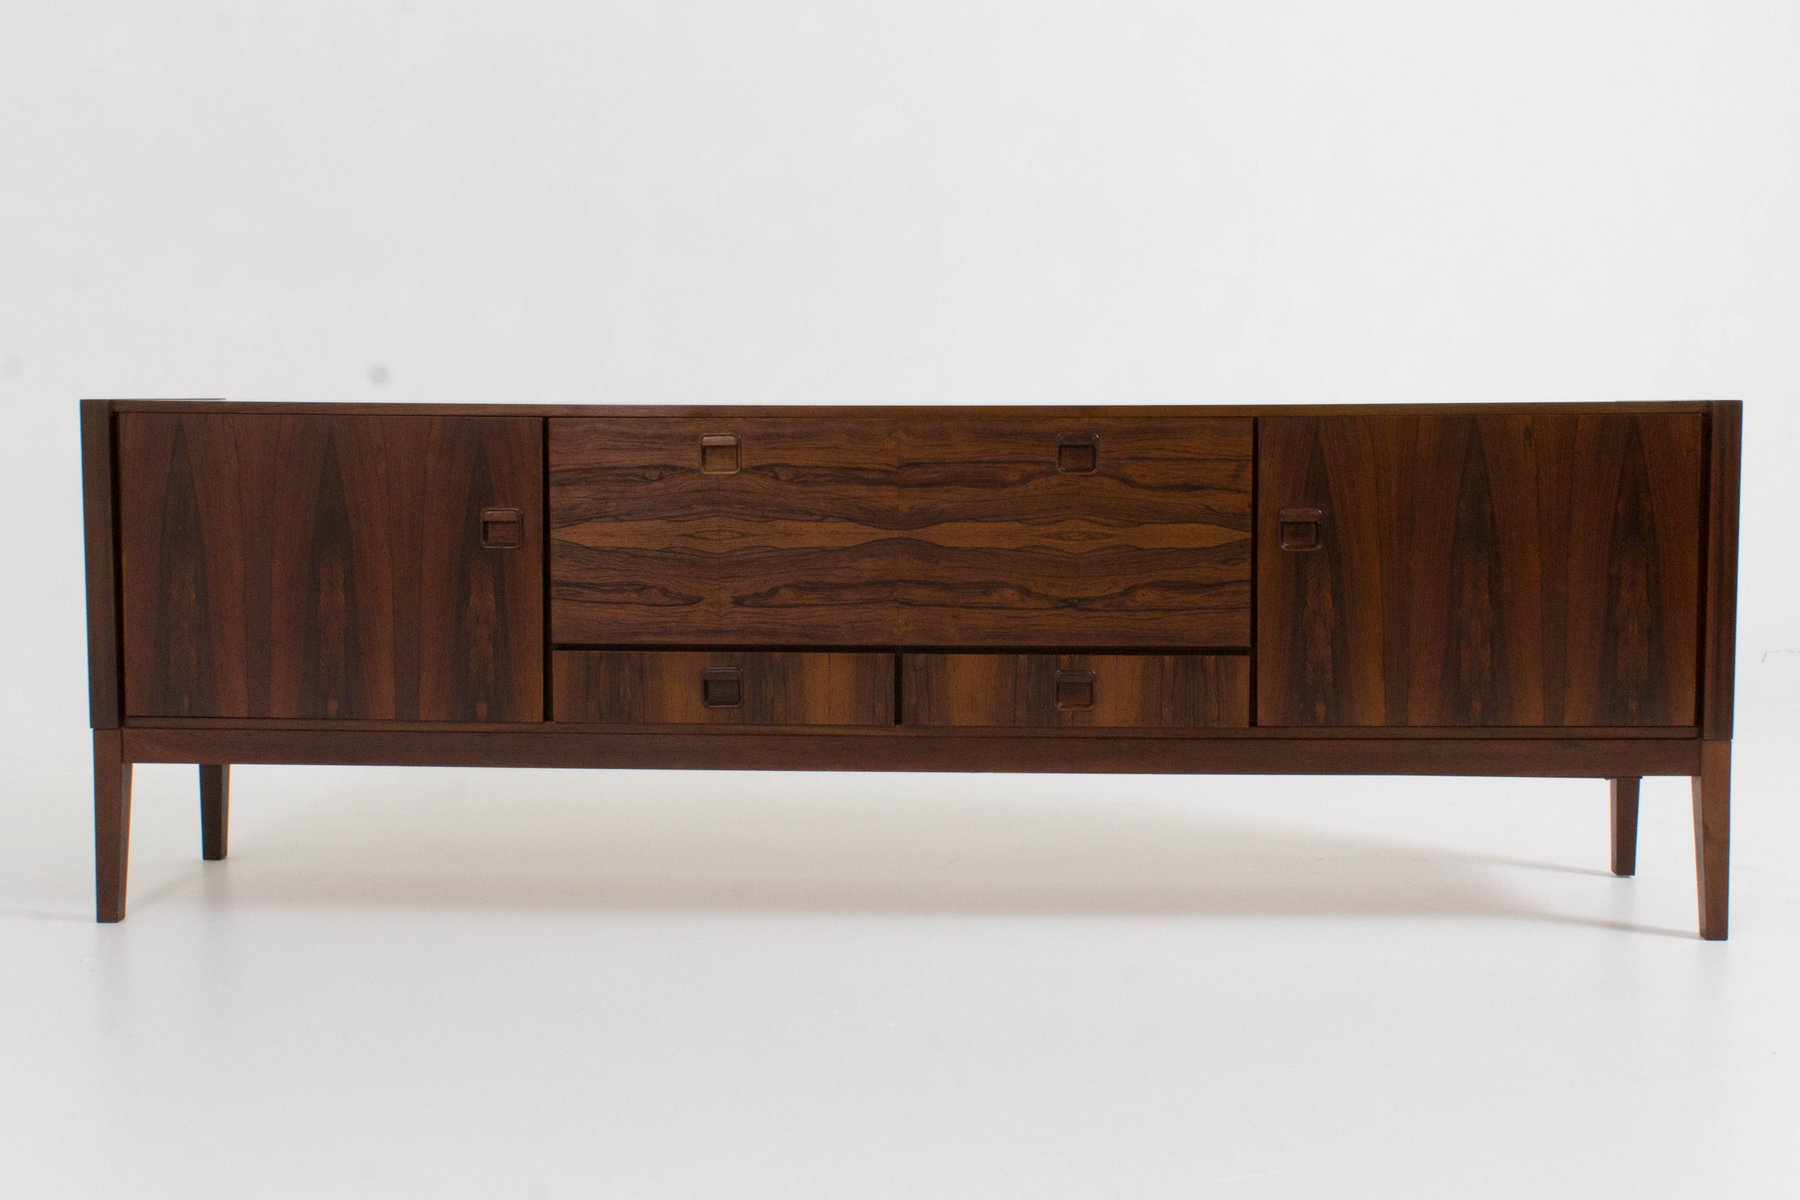 Modern Sideboard mid century modern sideboard from fristho 1960s for sale at pamono